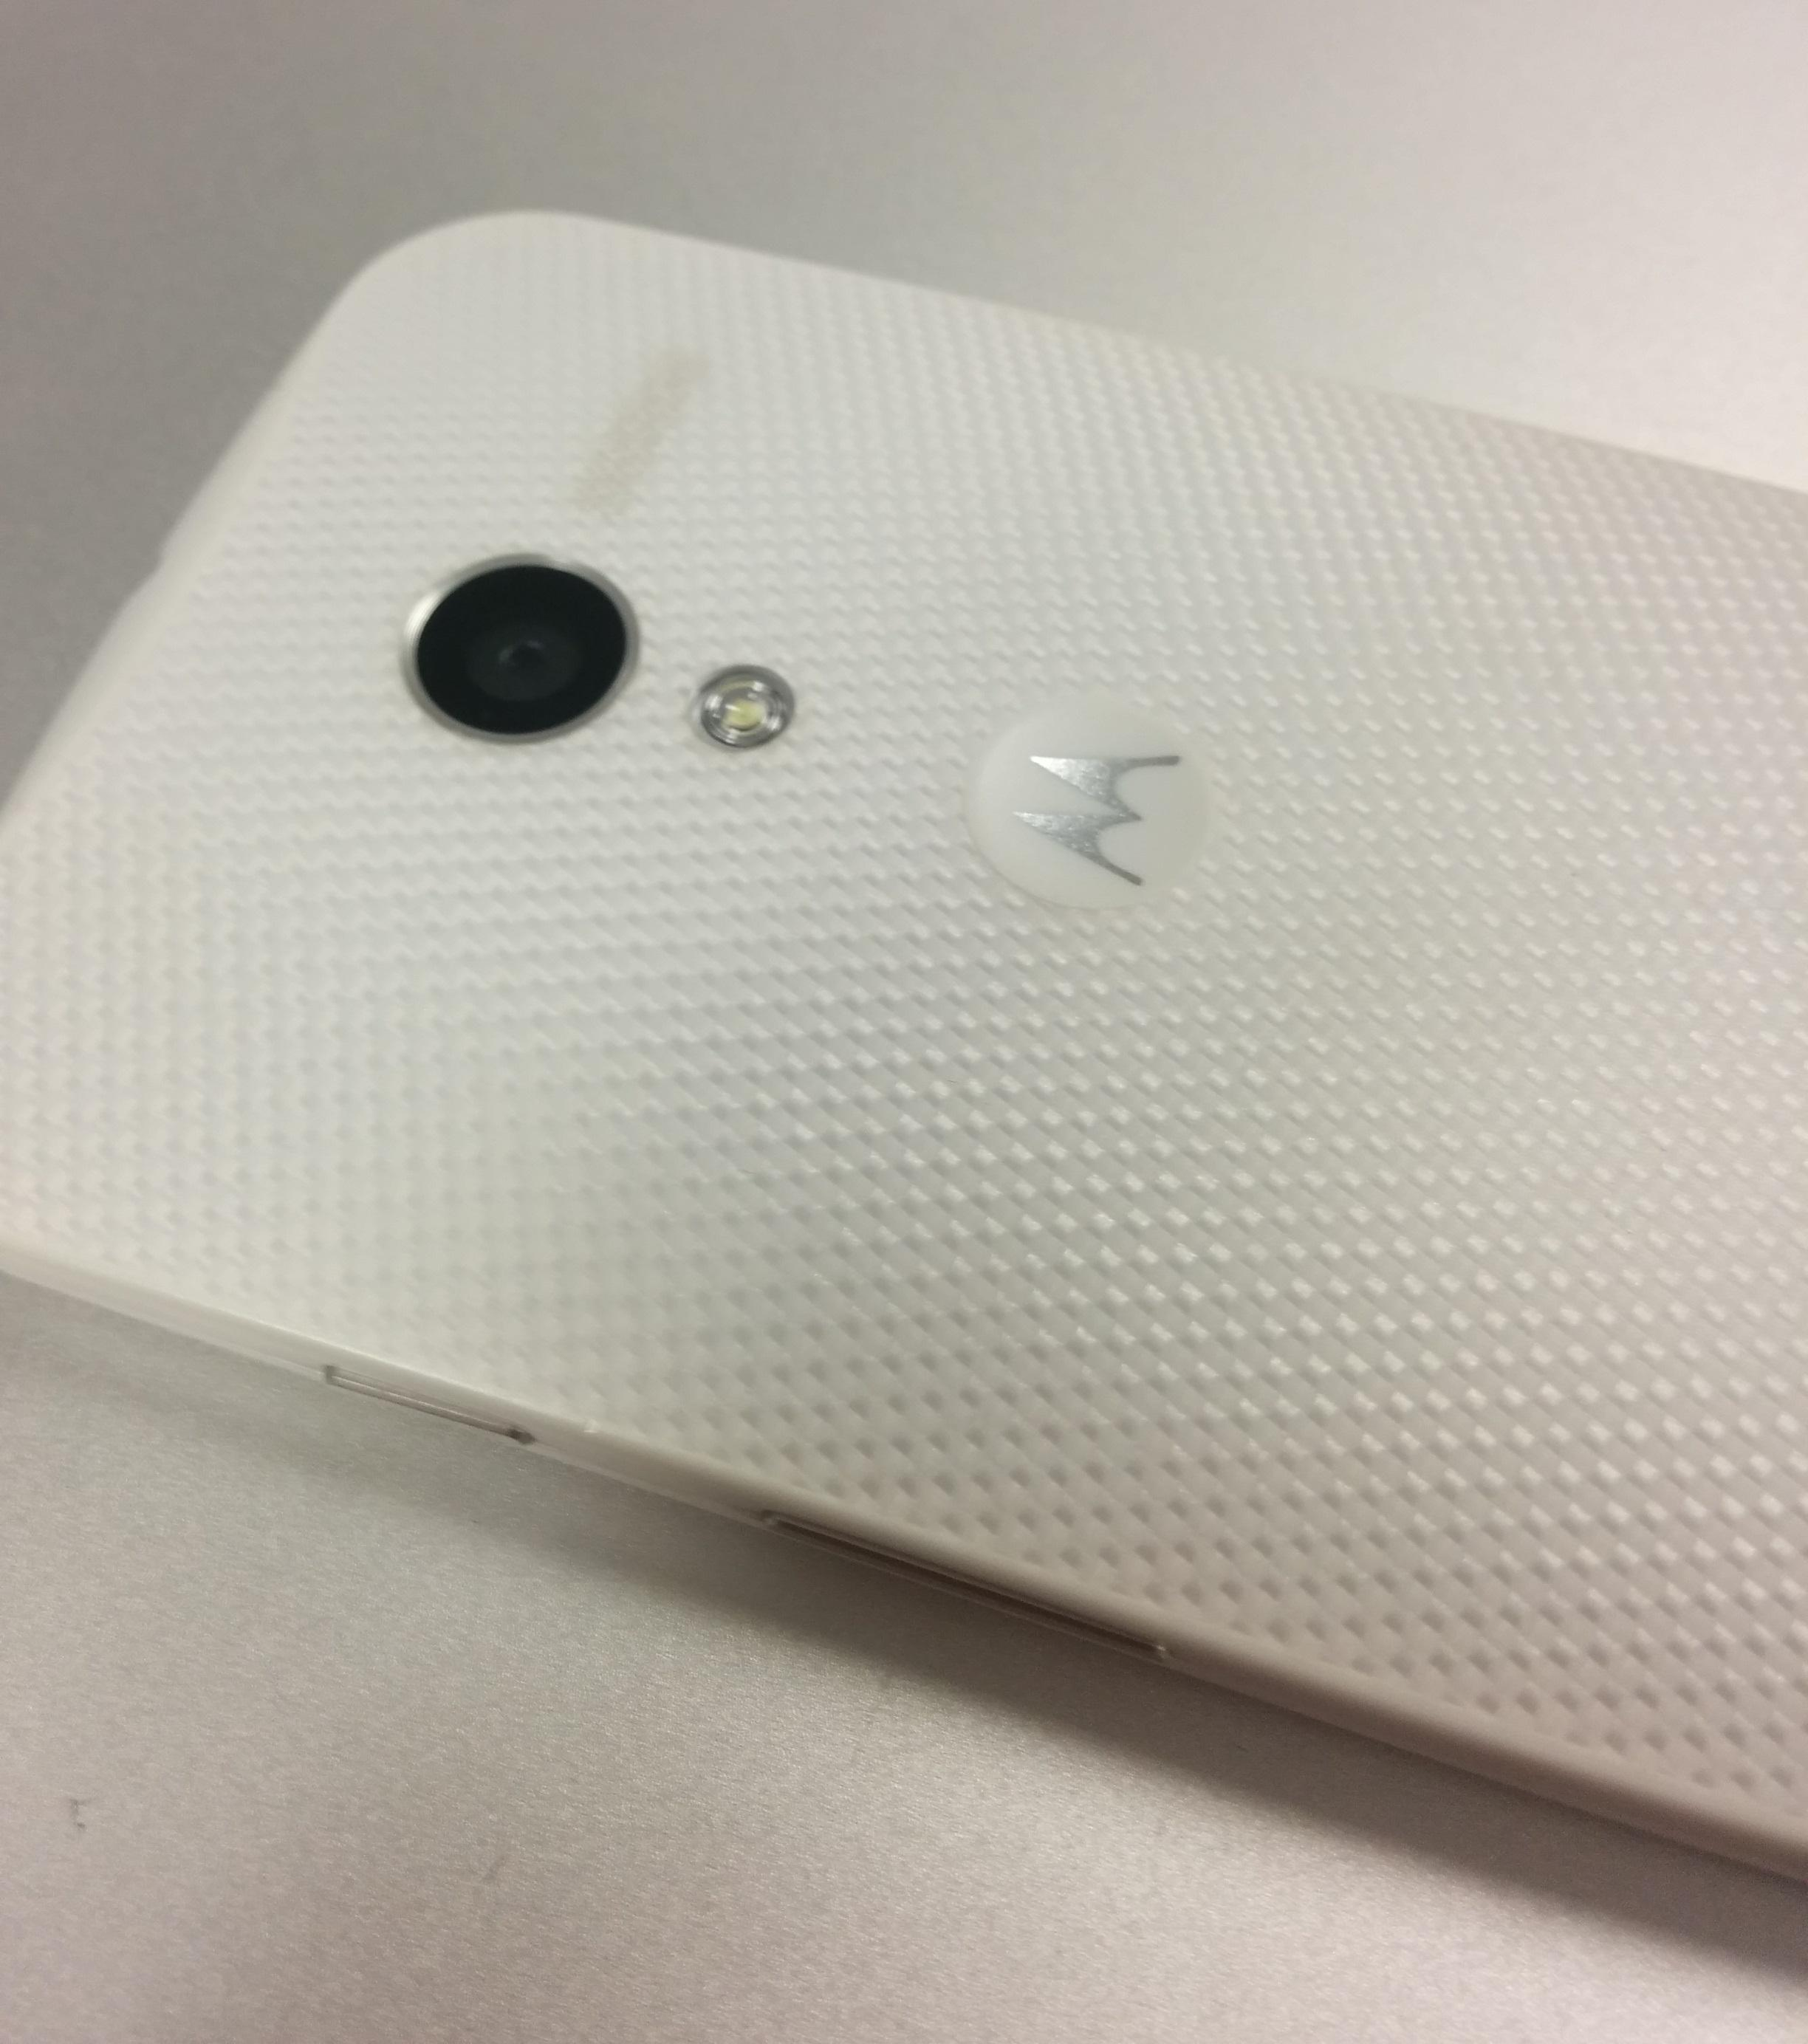 Moto X review back white kevlar